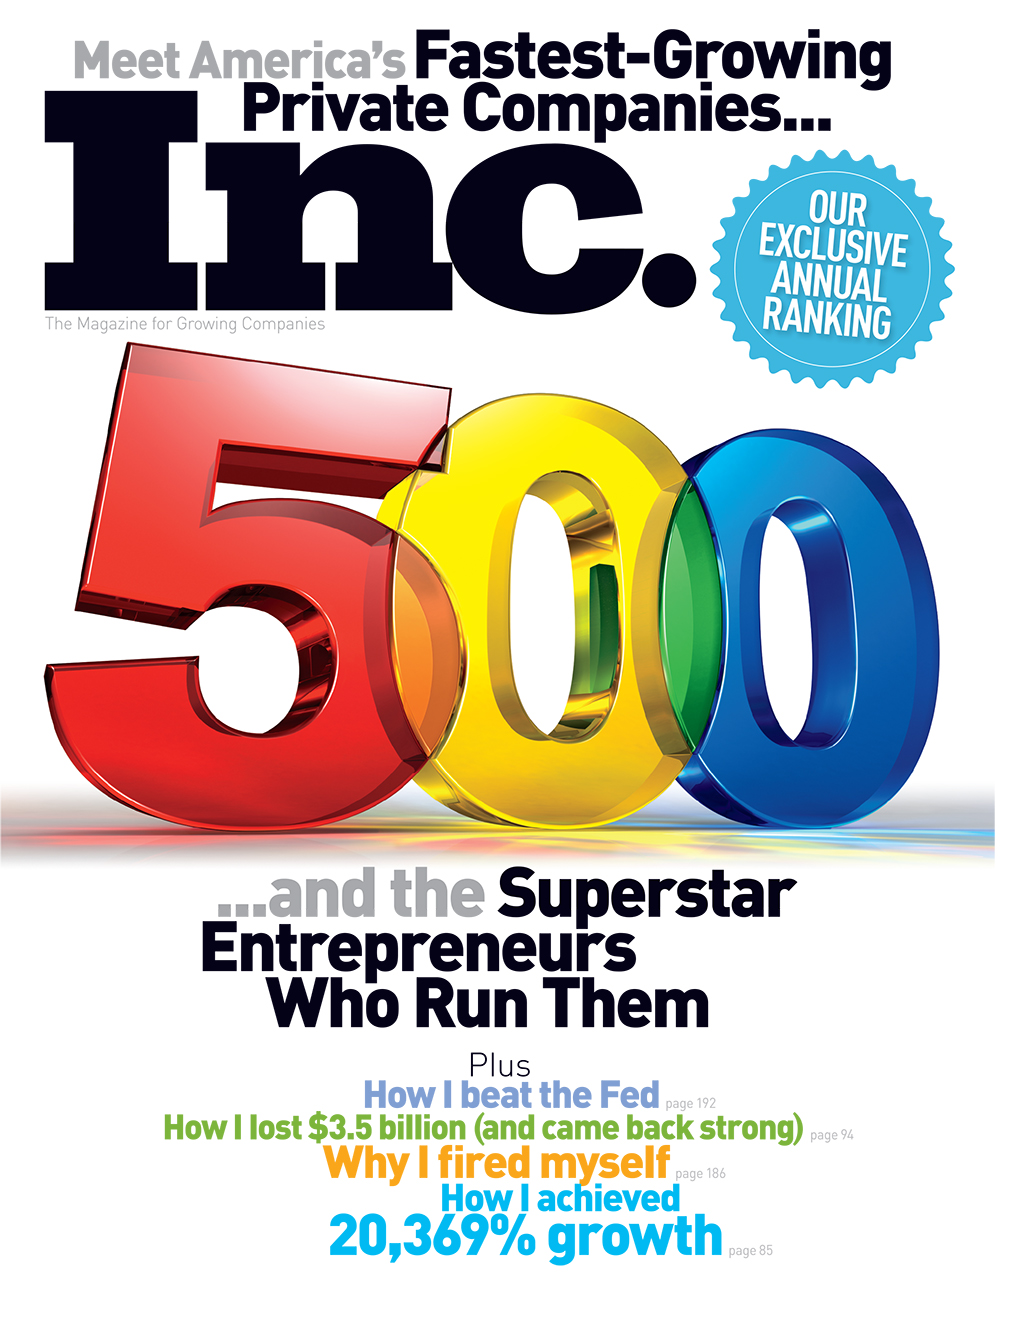 Inc.com's Best 20 How-to Guides of 2010 for Entrepreneurs